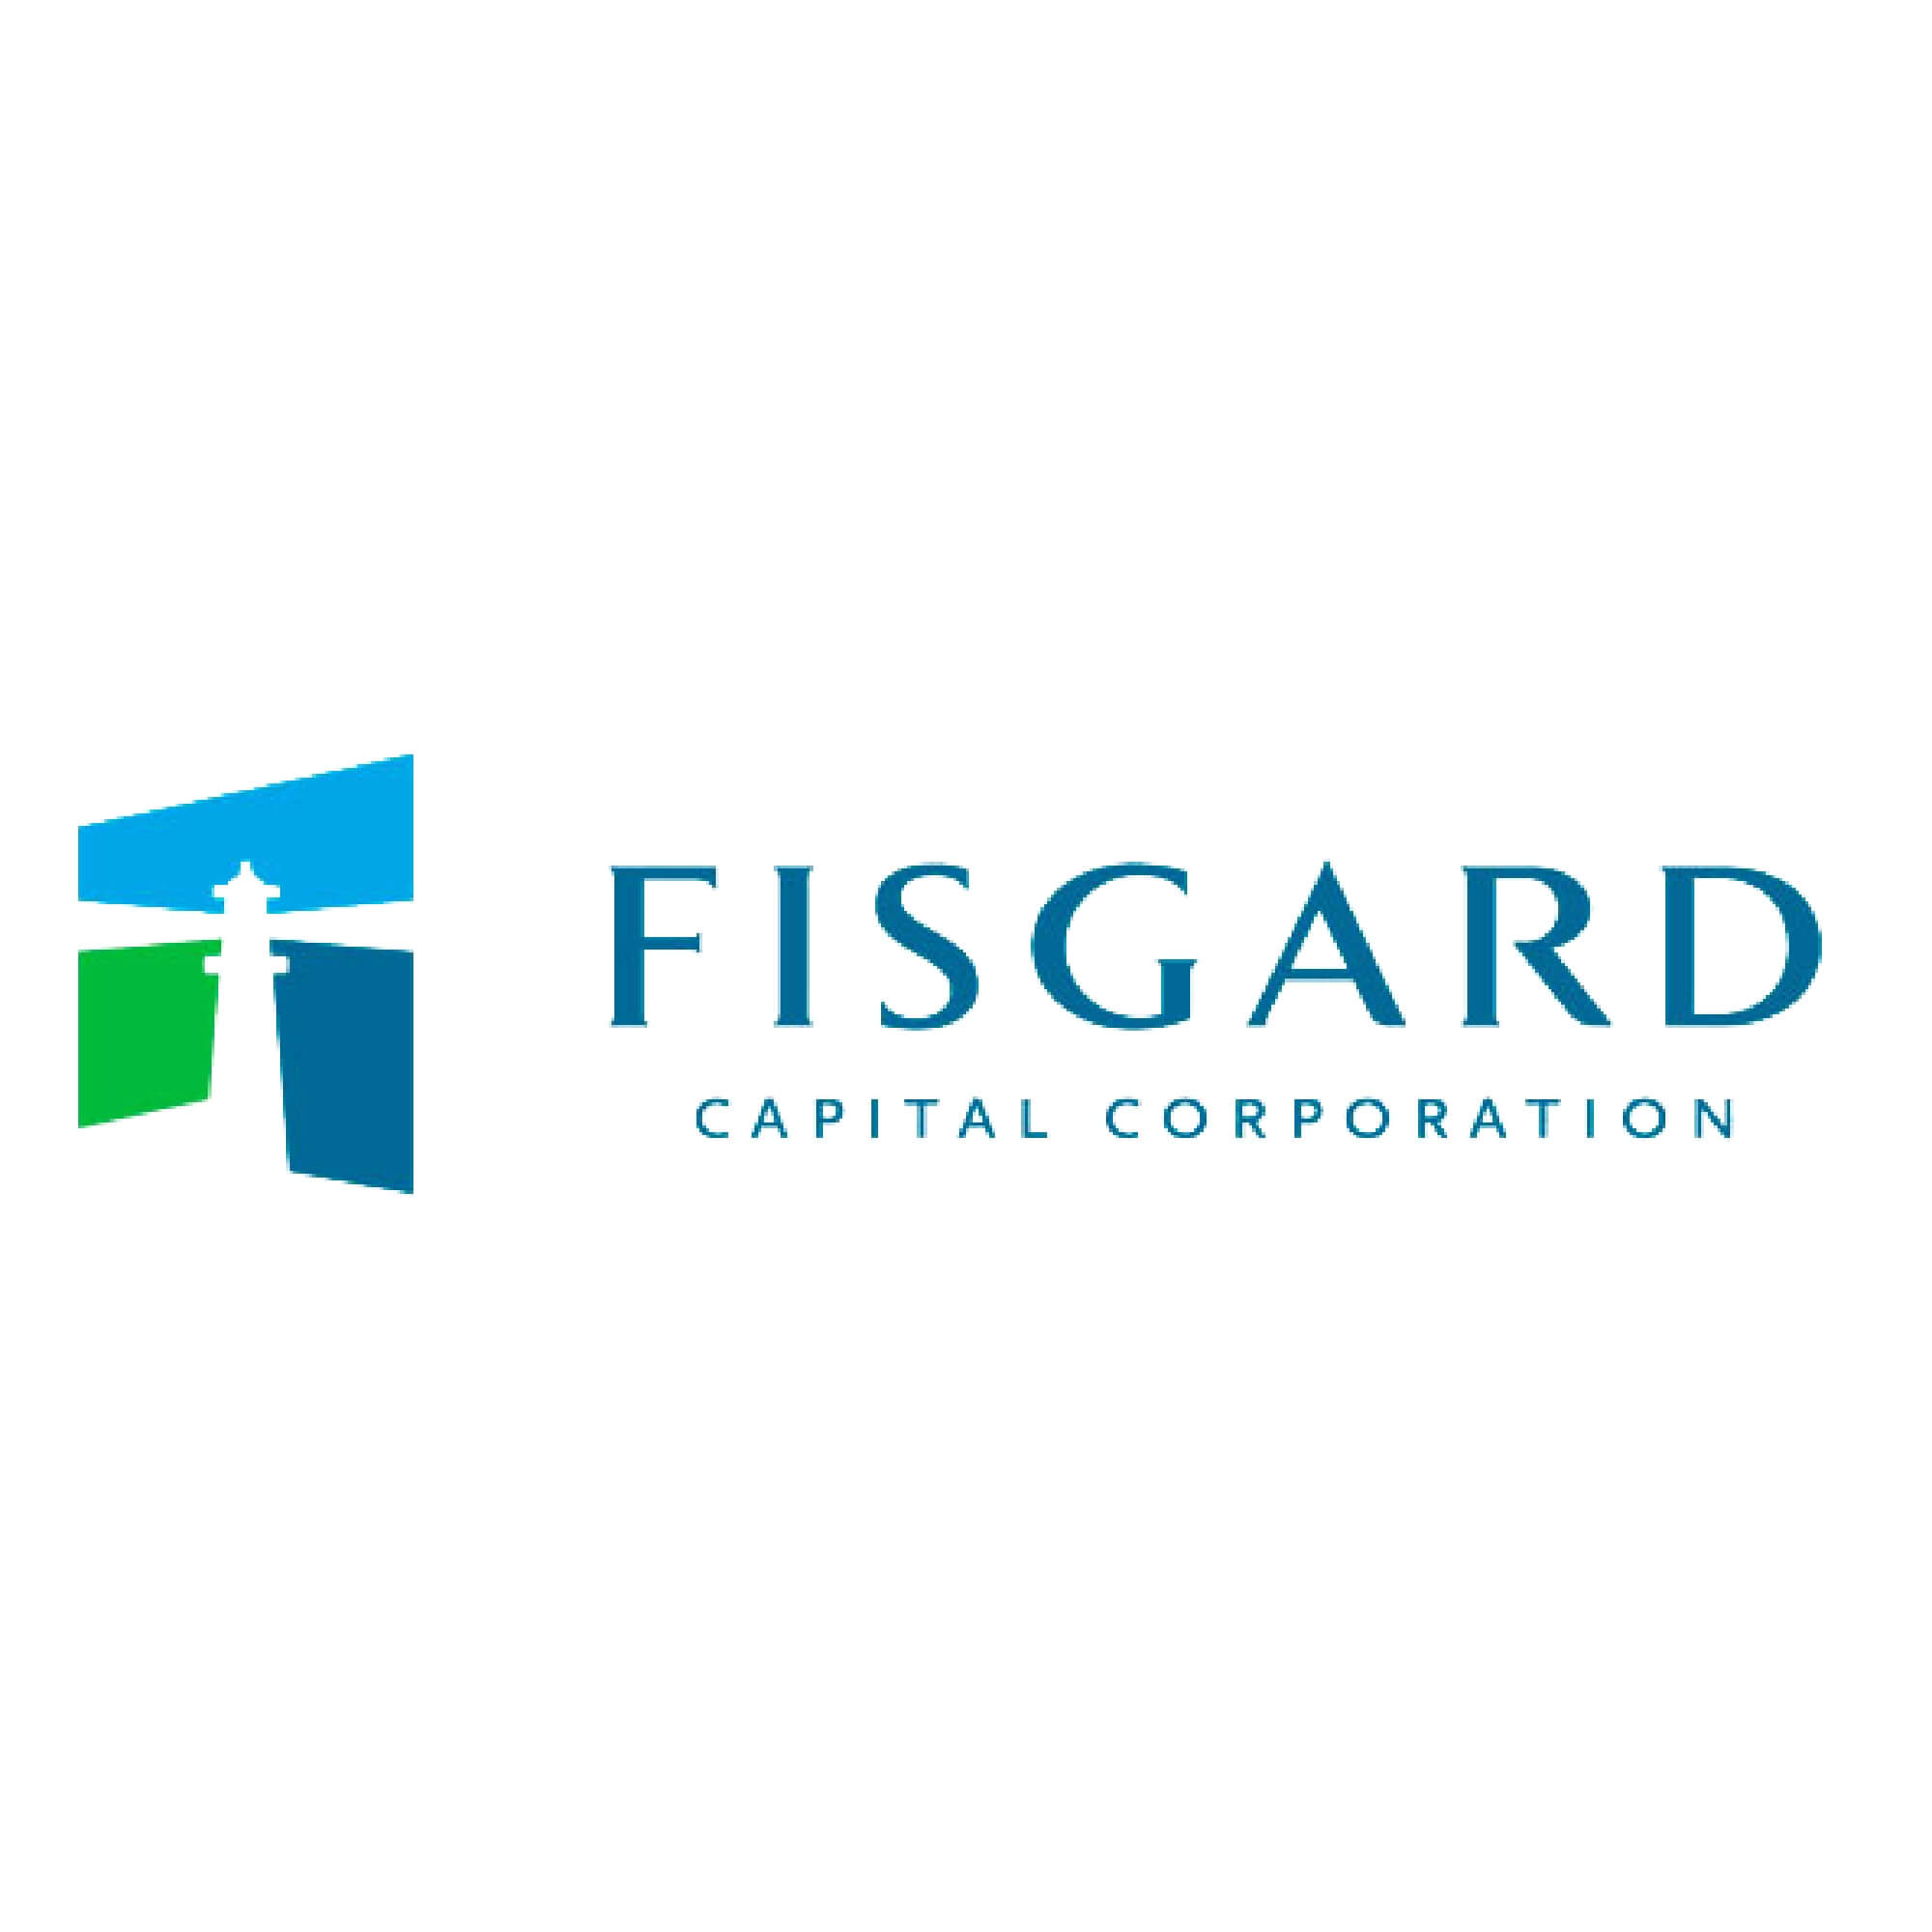 fisgard capital